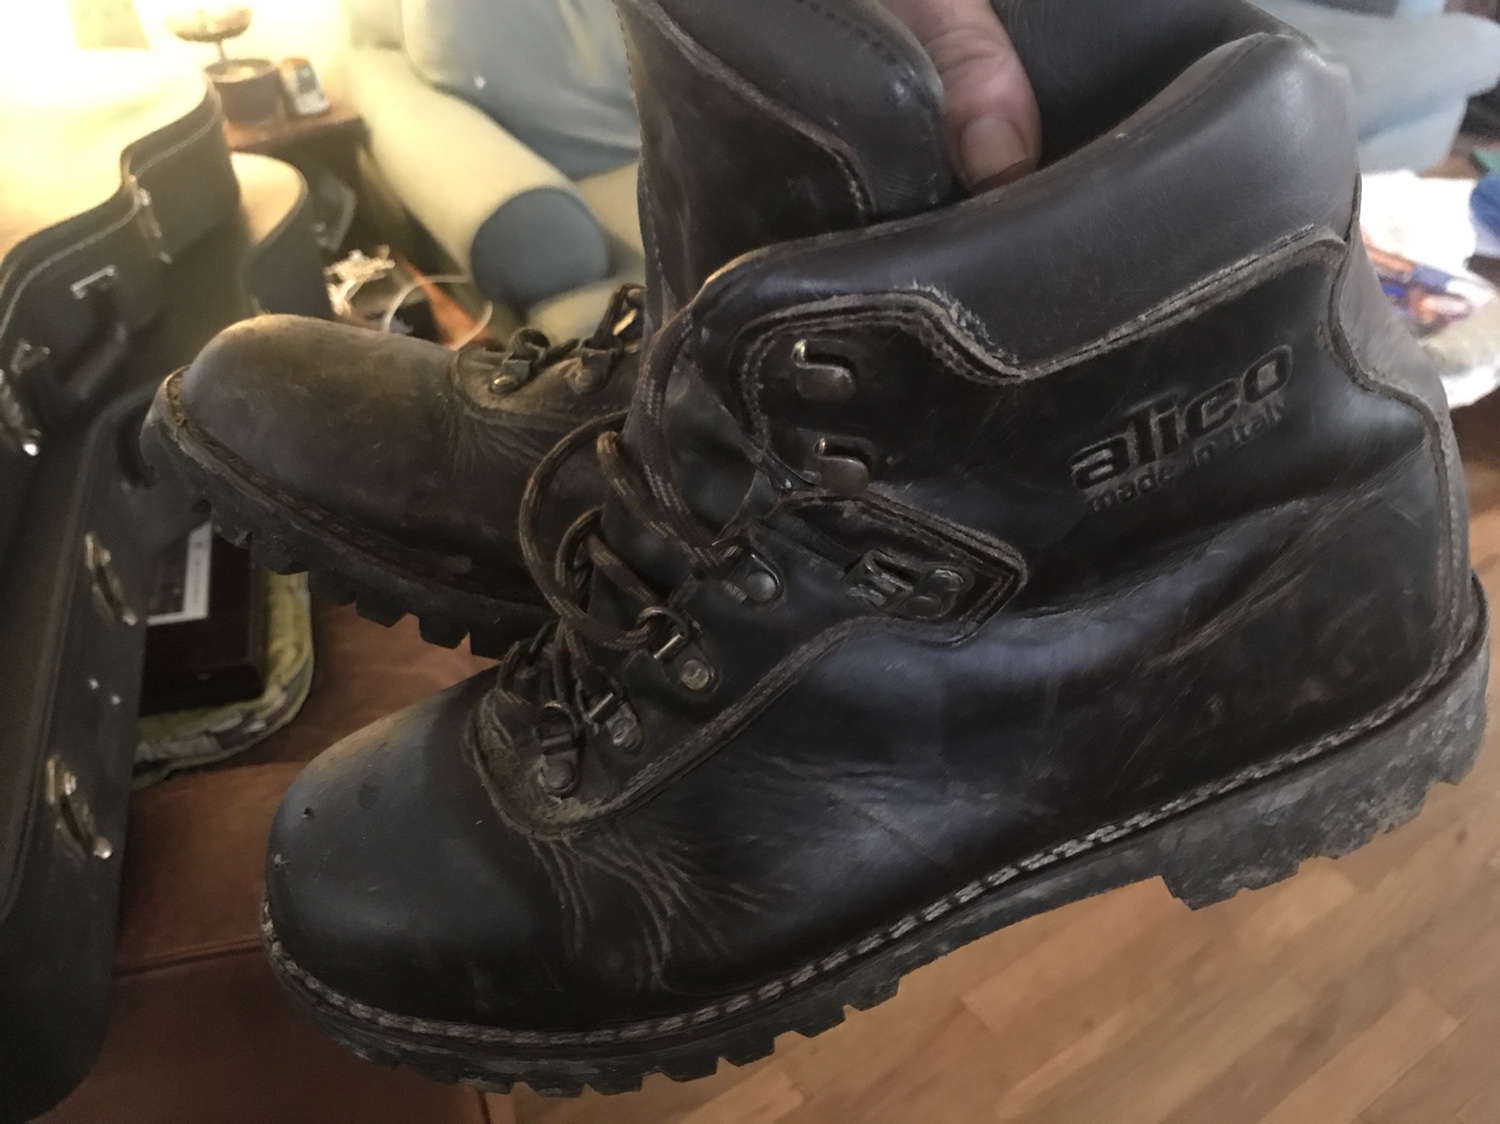 a22b3950033 Boots. Old school. Leather. Sno-Seal.   Rokslide Forum